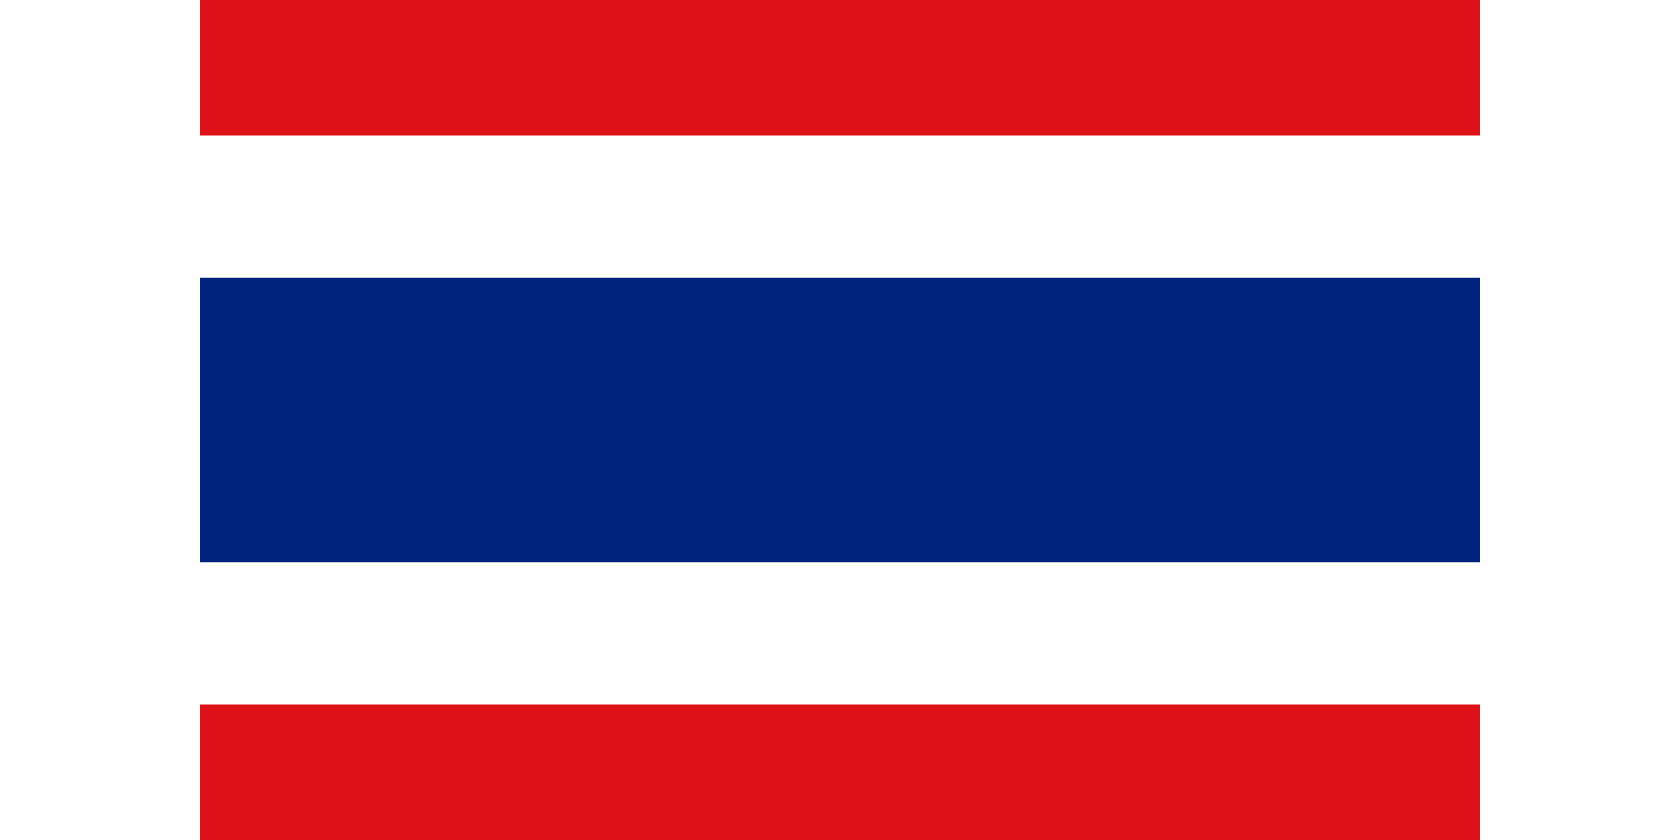 Thai-Based IRPC to Begin Paraxylene Operations